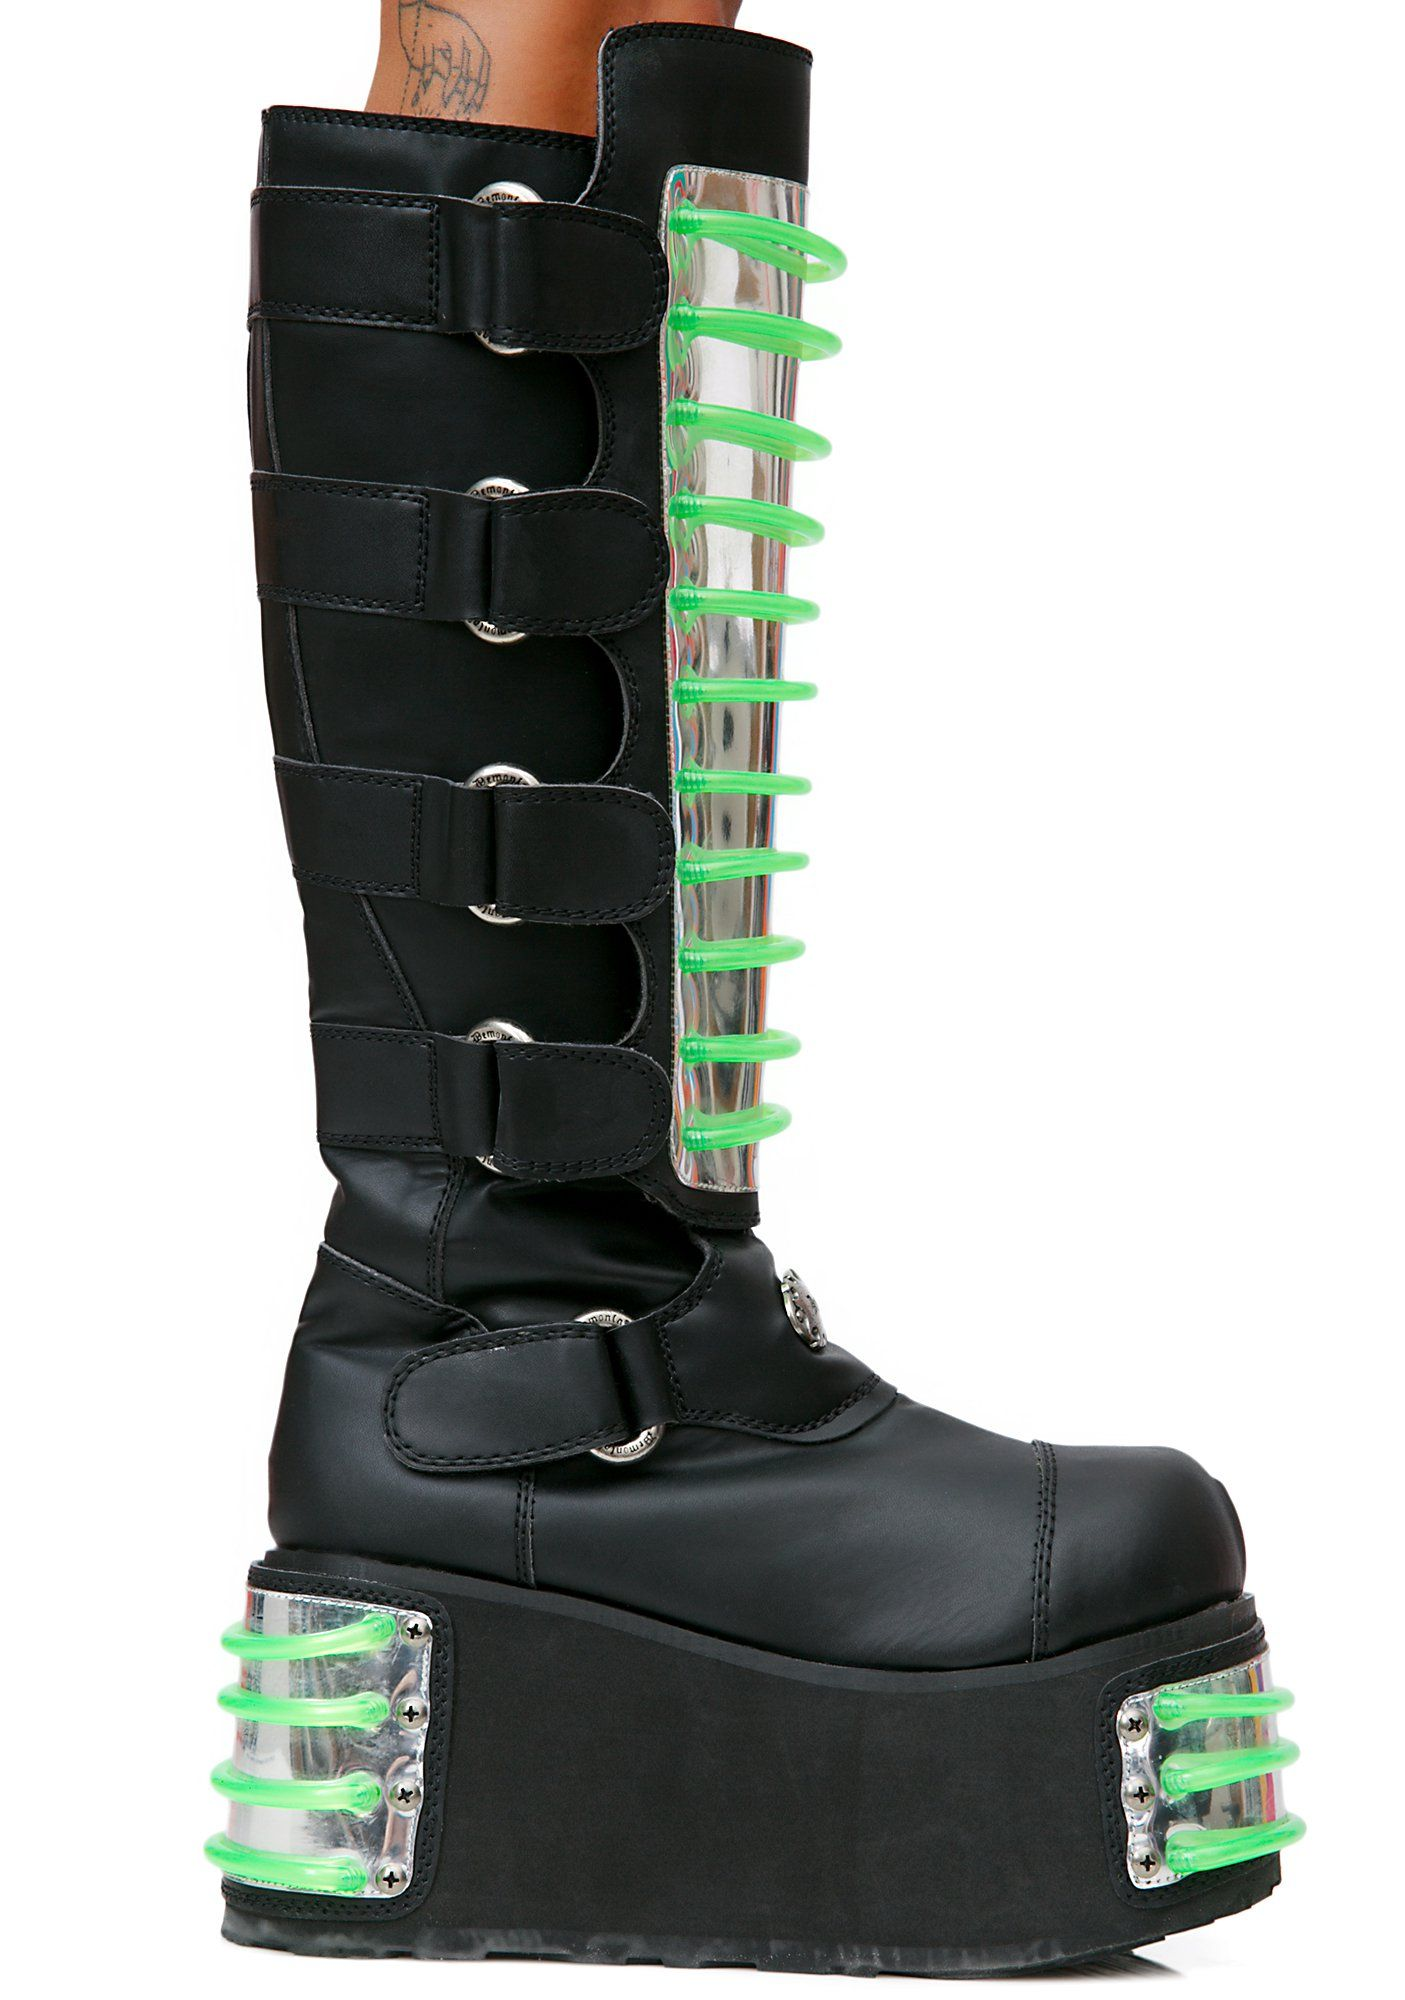 1484e79b1259 Burning Man Demonia Techno UV Platform Boots